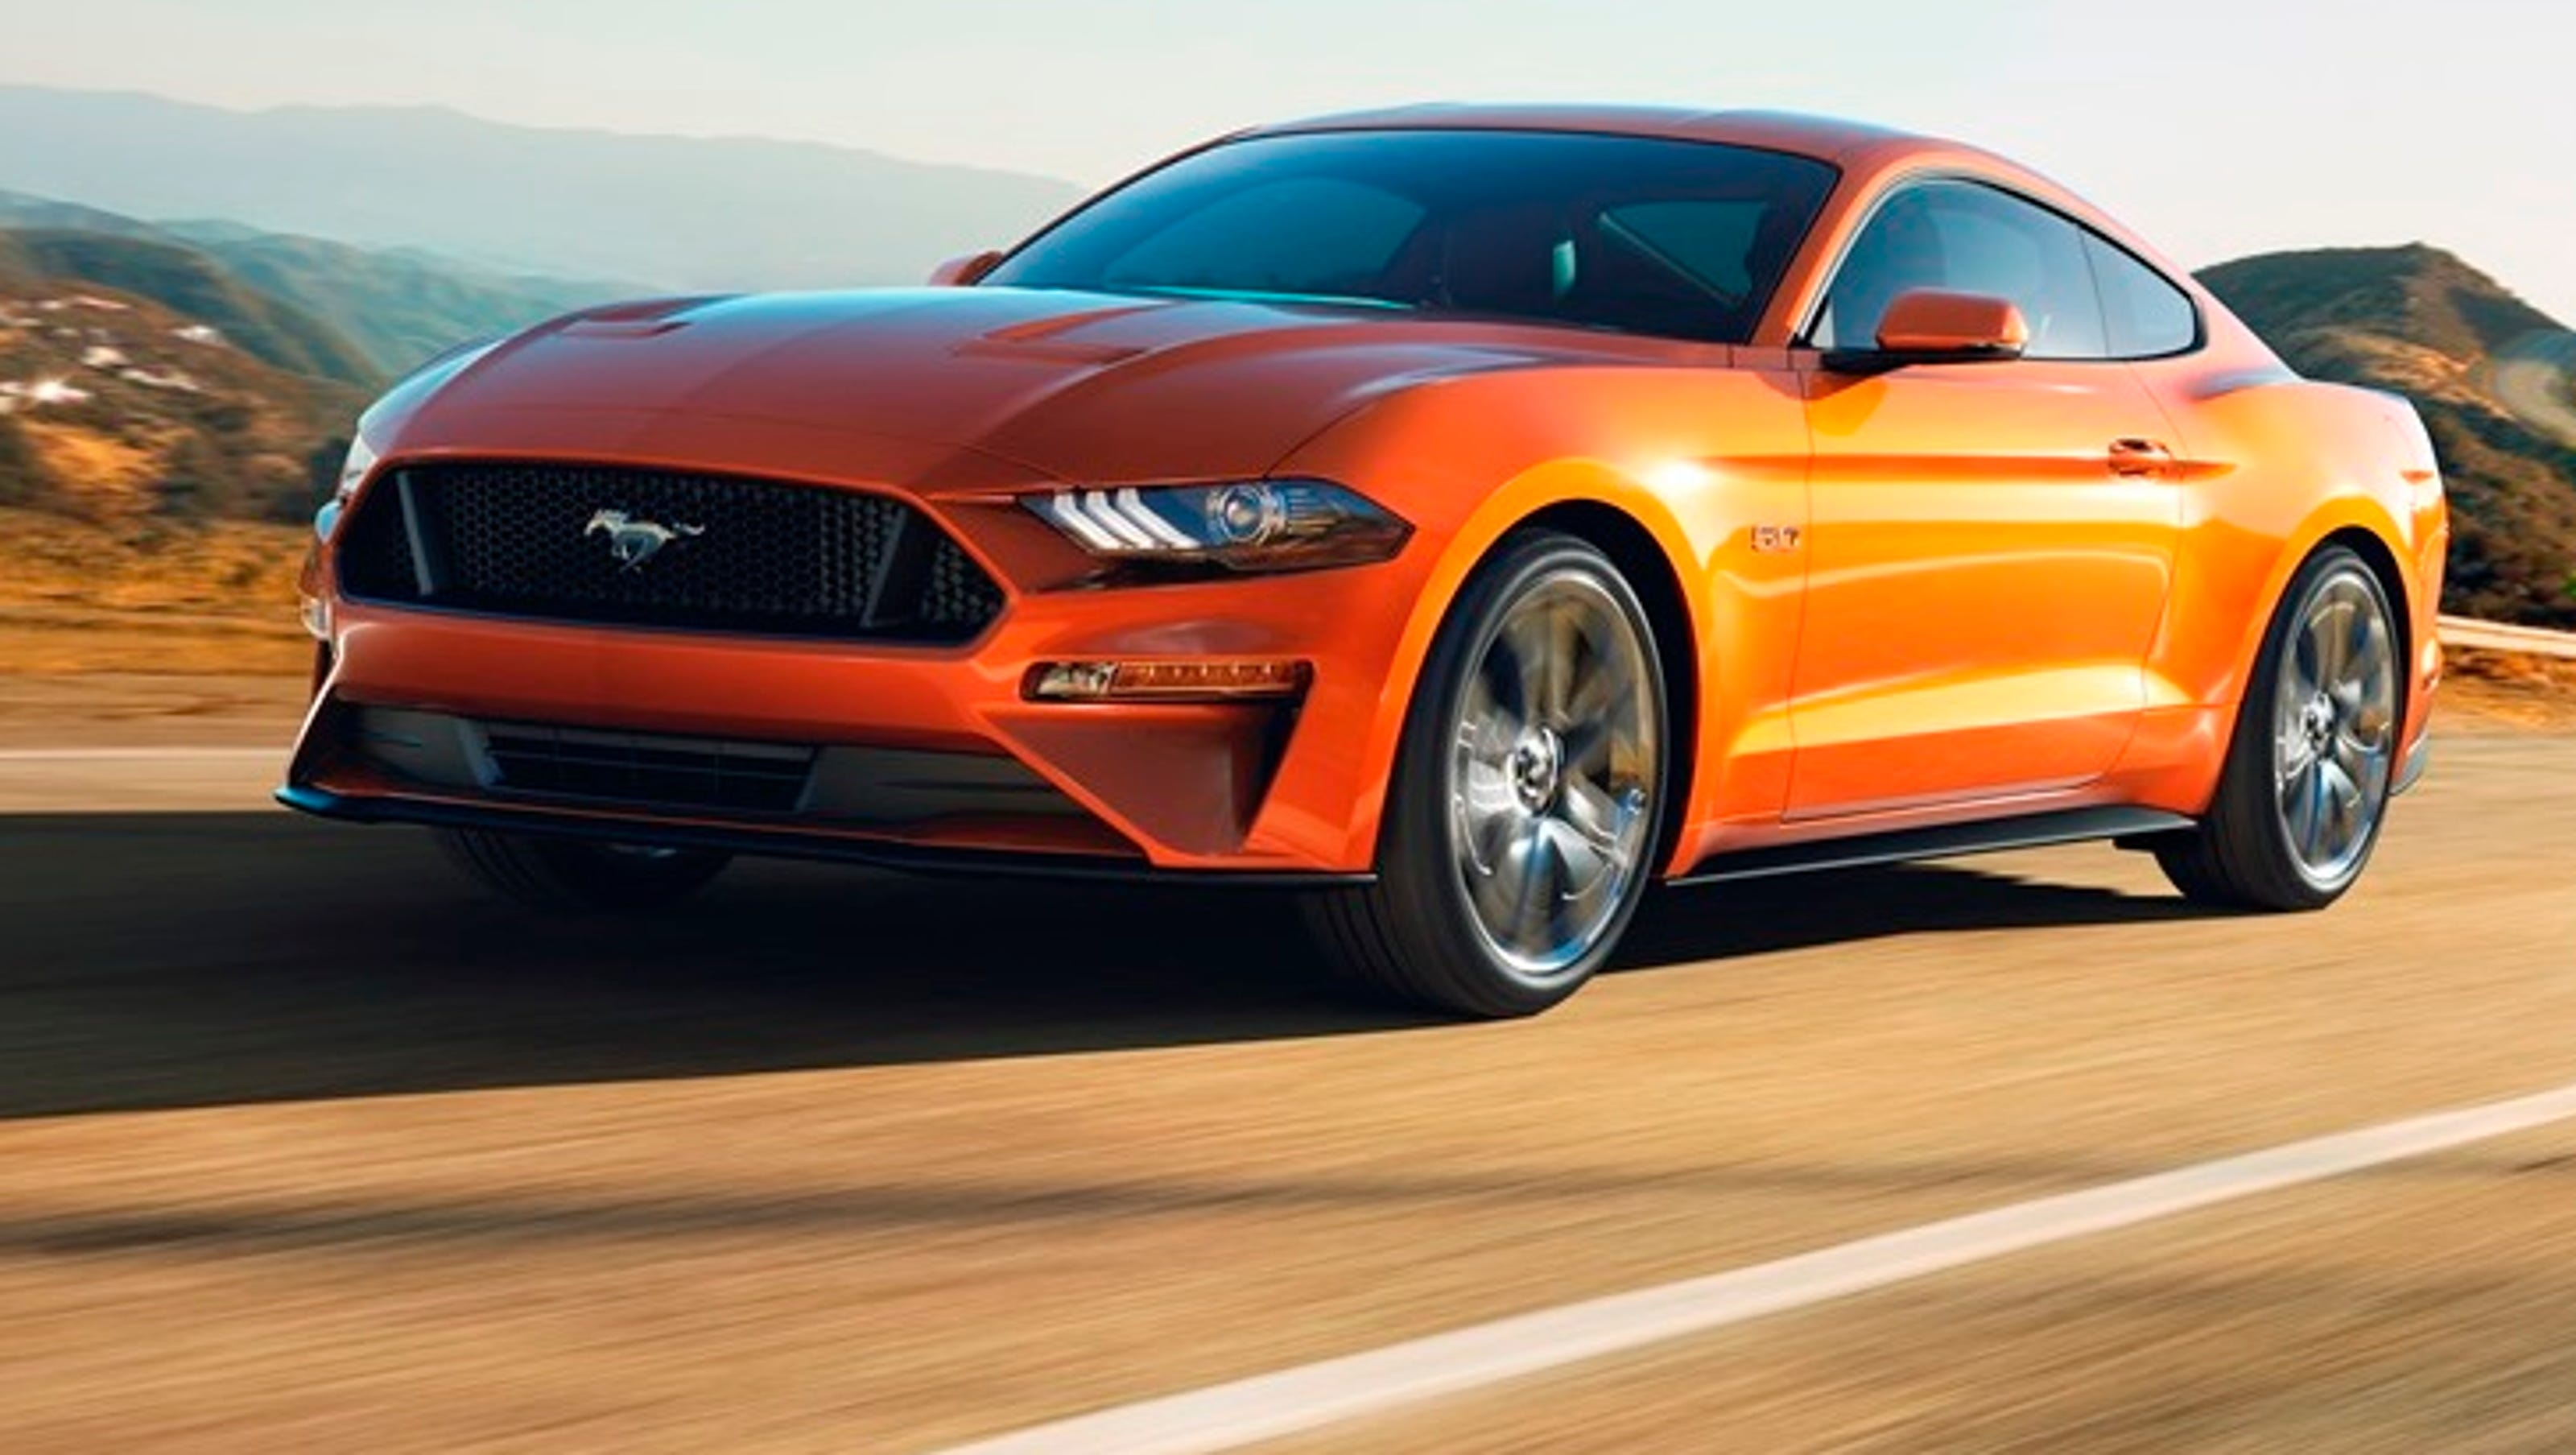 Ford says mustangs acceleration will blow doors off rivals